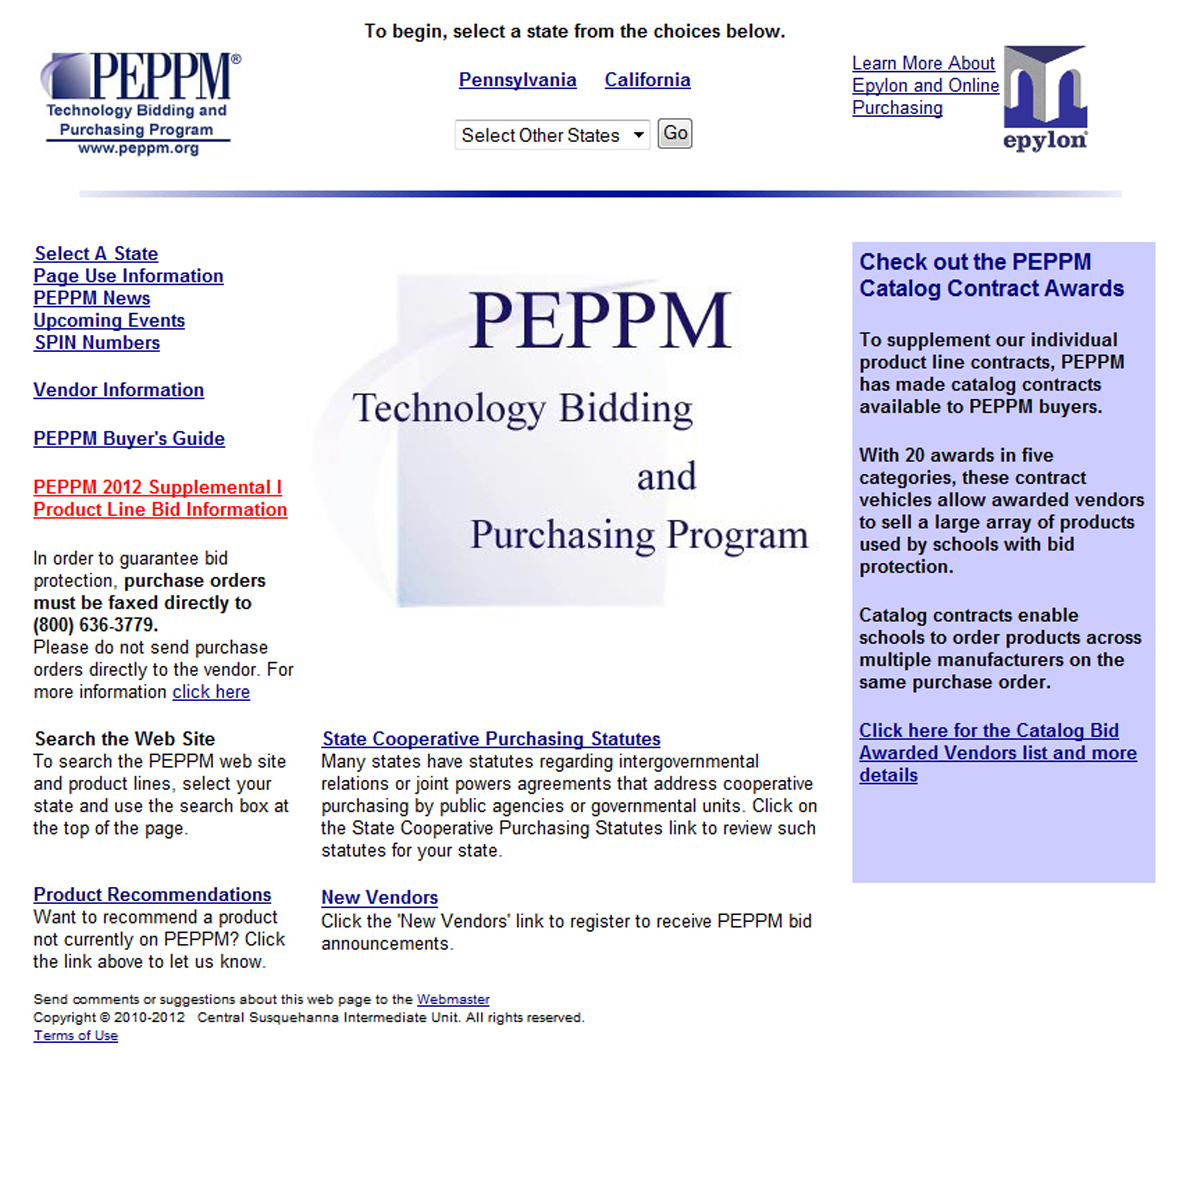 PEPPM Home Page